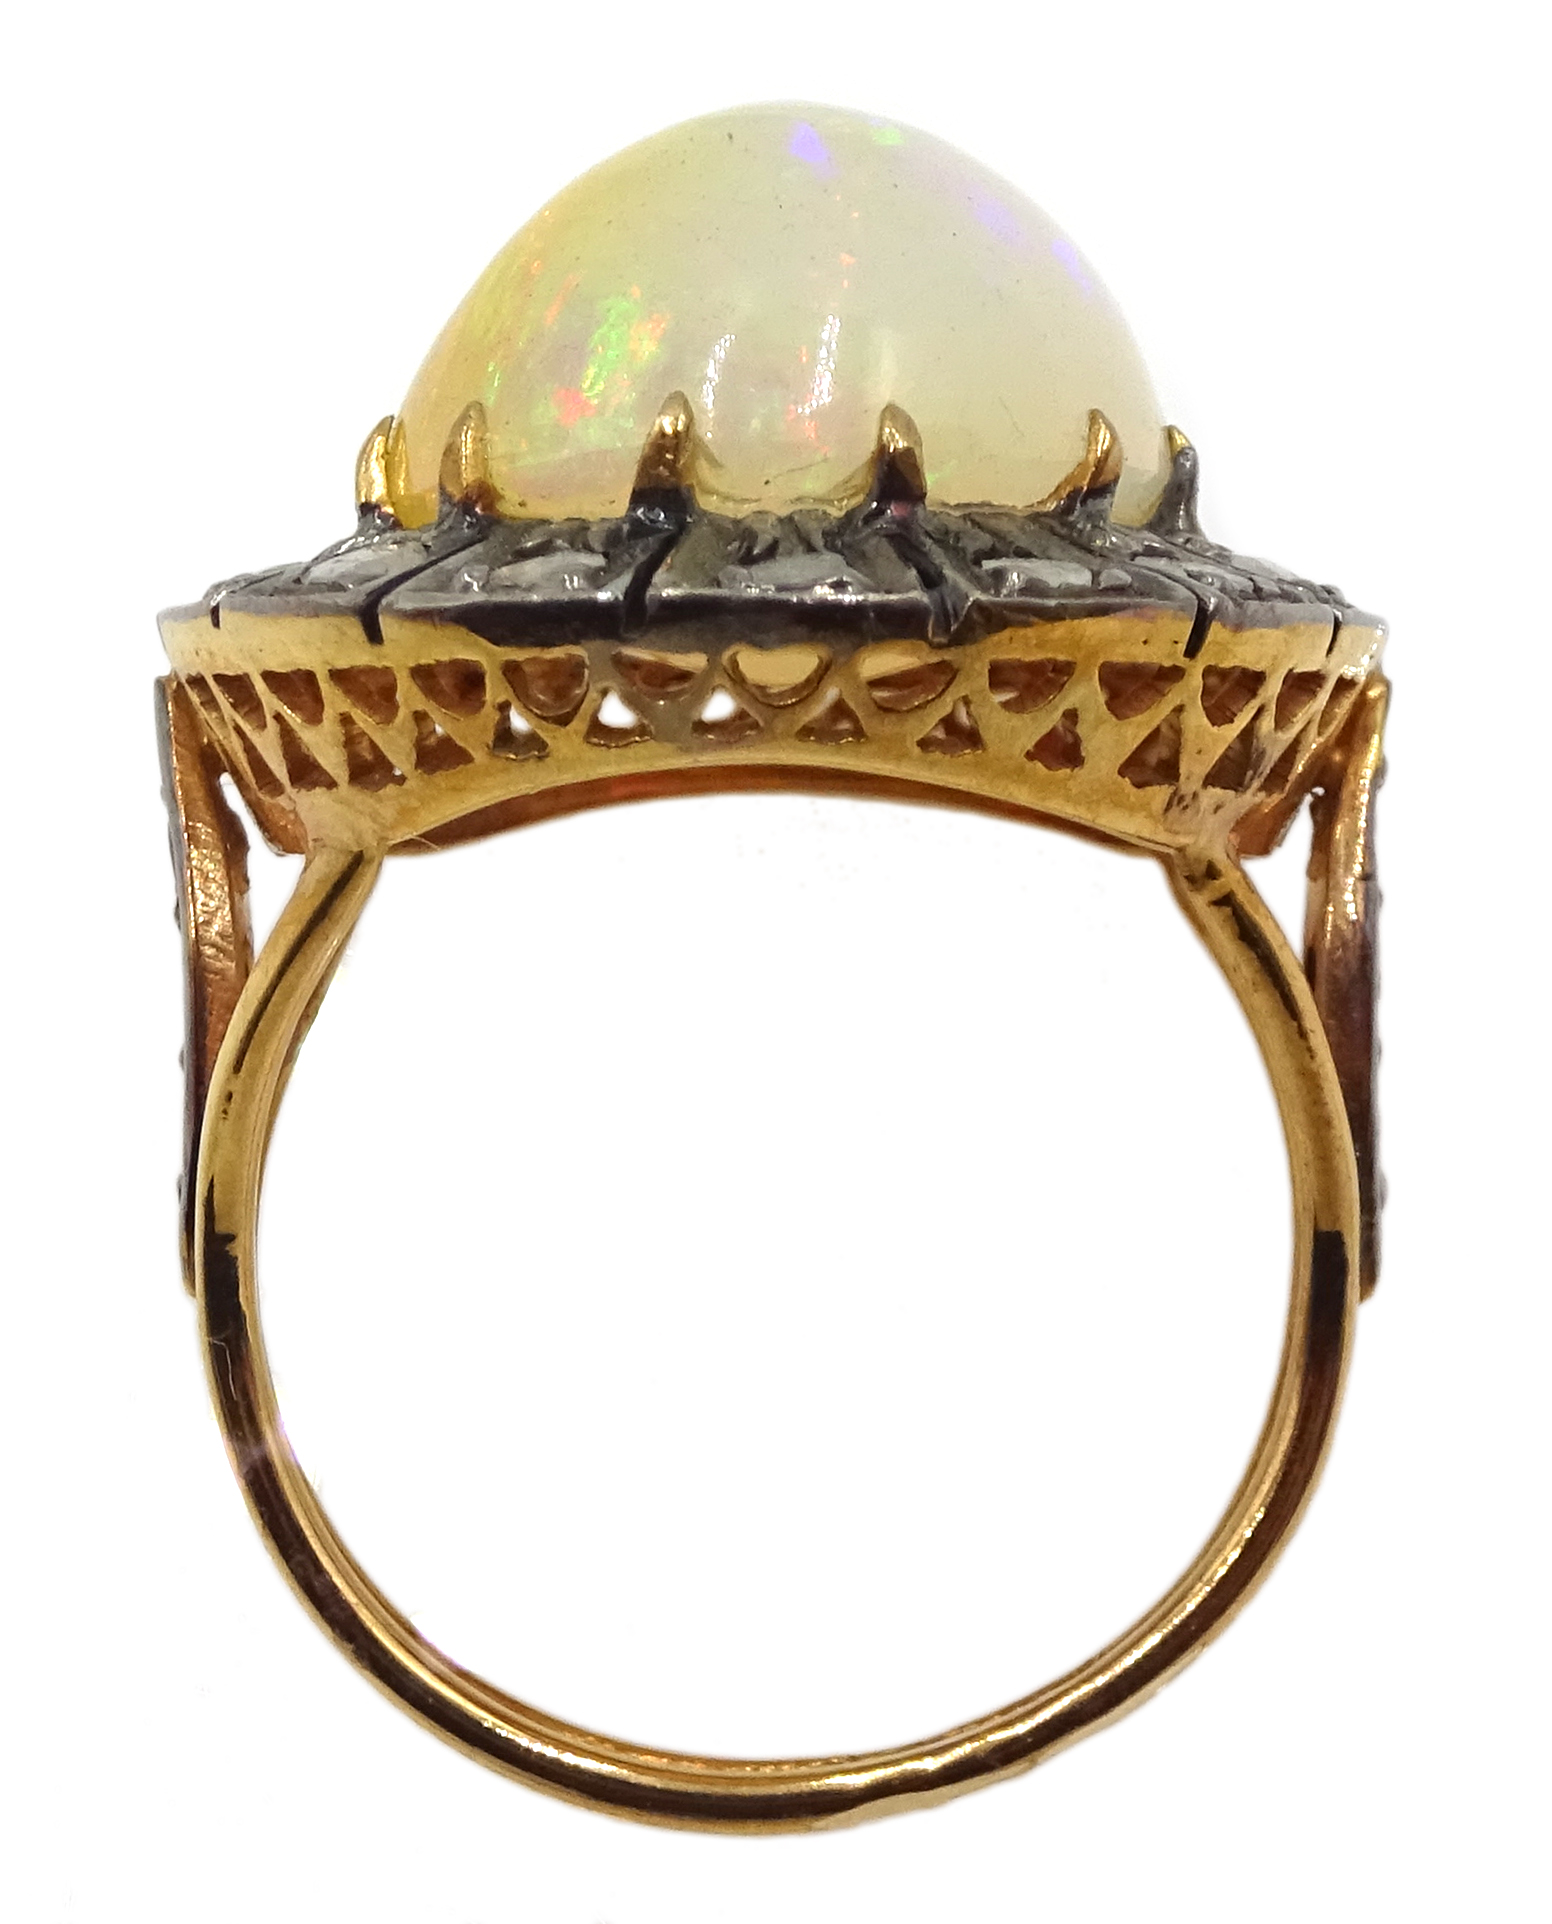 14ct gold and silver cabochon Ethiopian opal and rose cit diamond ring, stamped 585 and 925 - Image 6 of 7